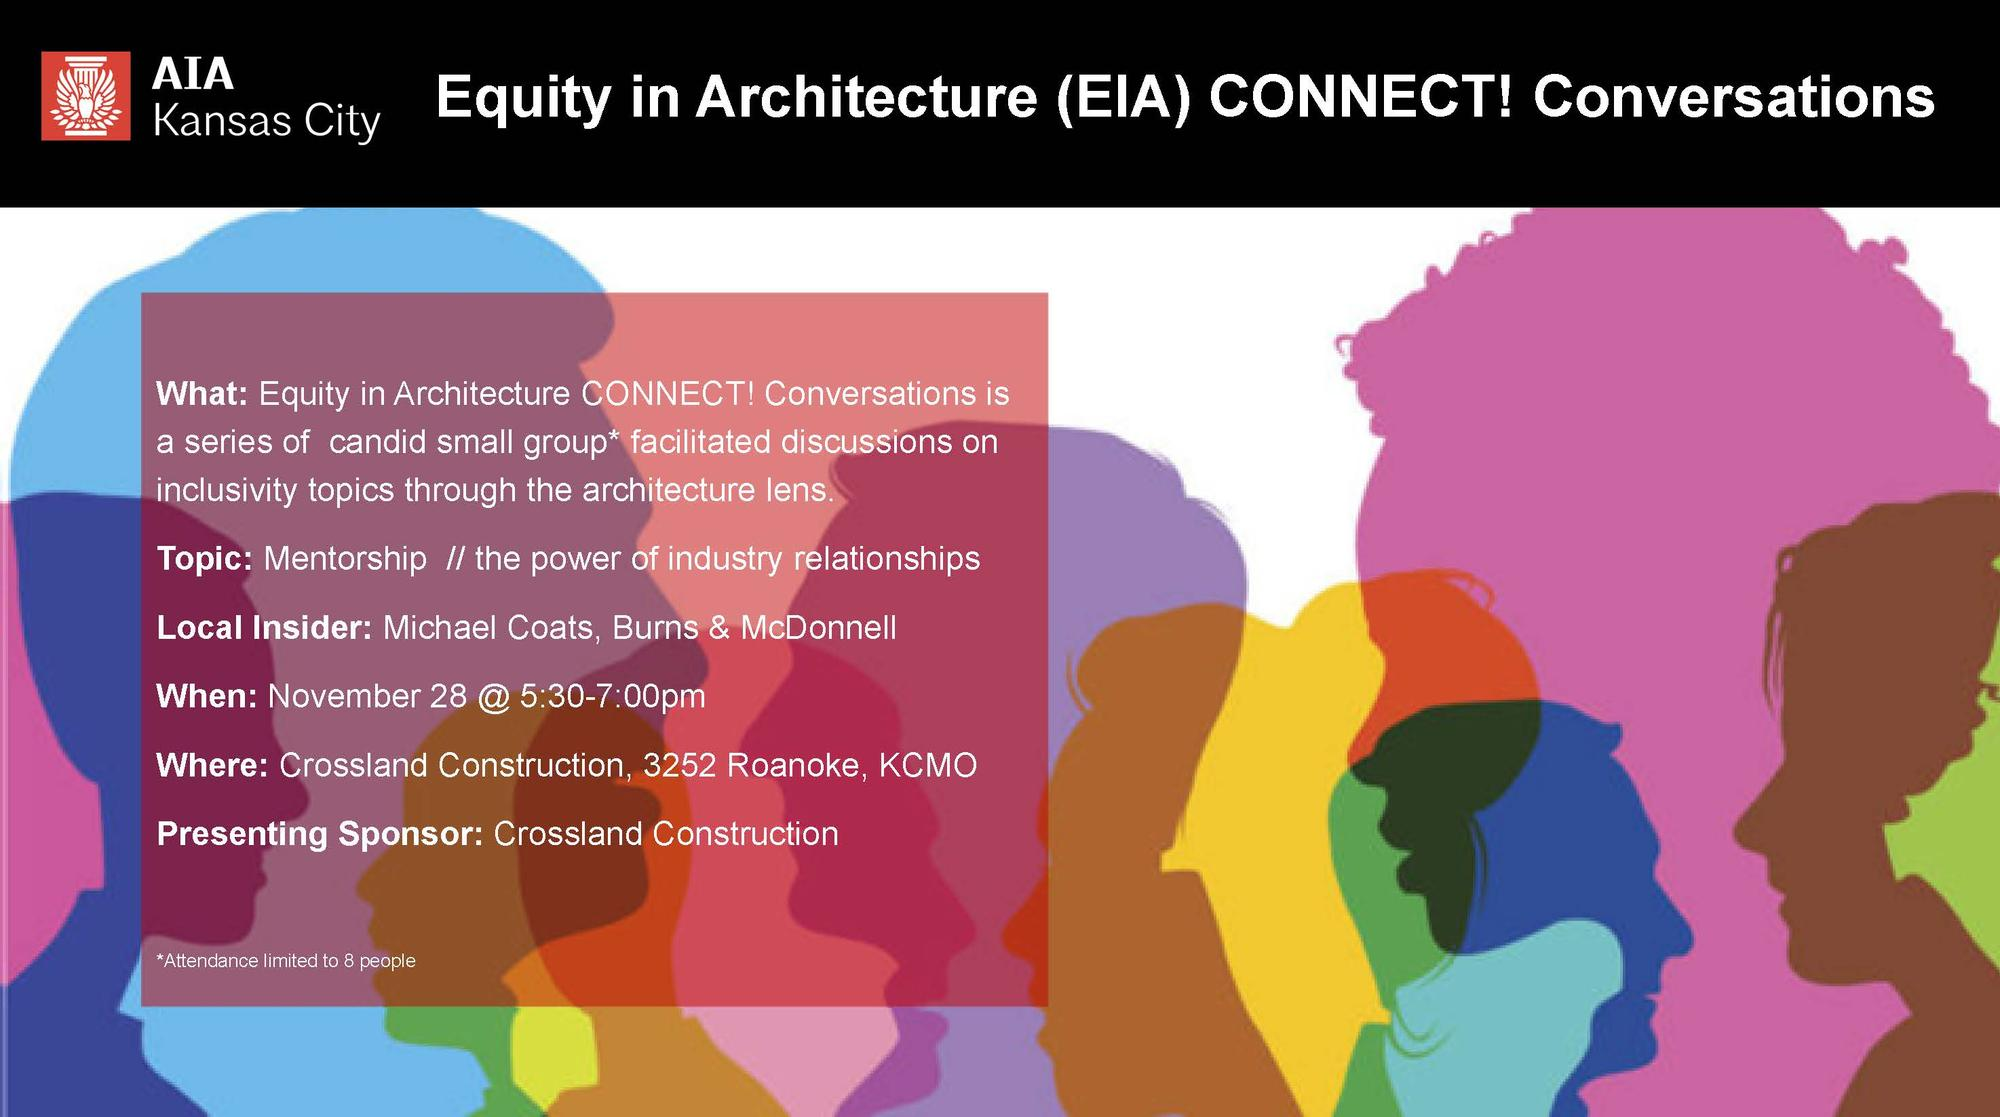 Equity in Architecture CONNECT! Conversations: Mentorship // the power of industry relationships